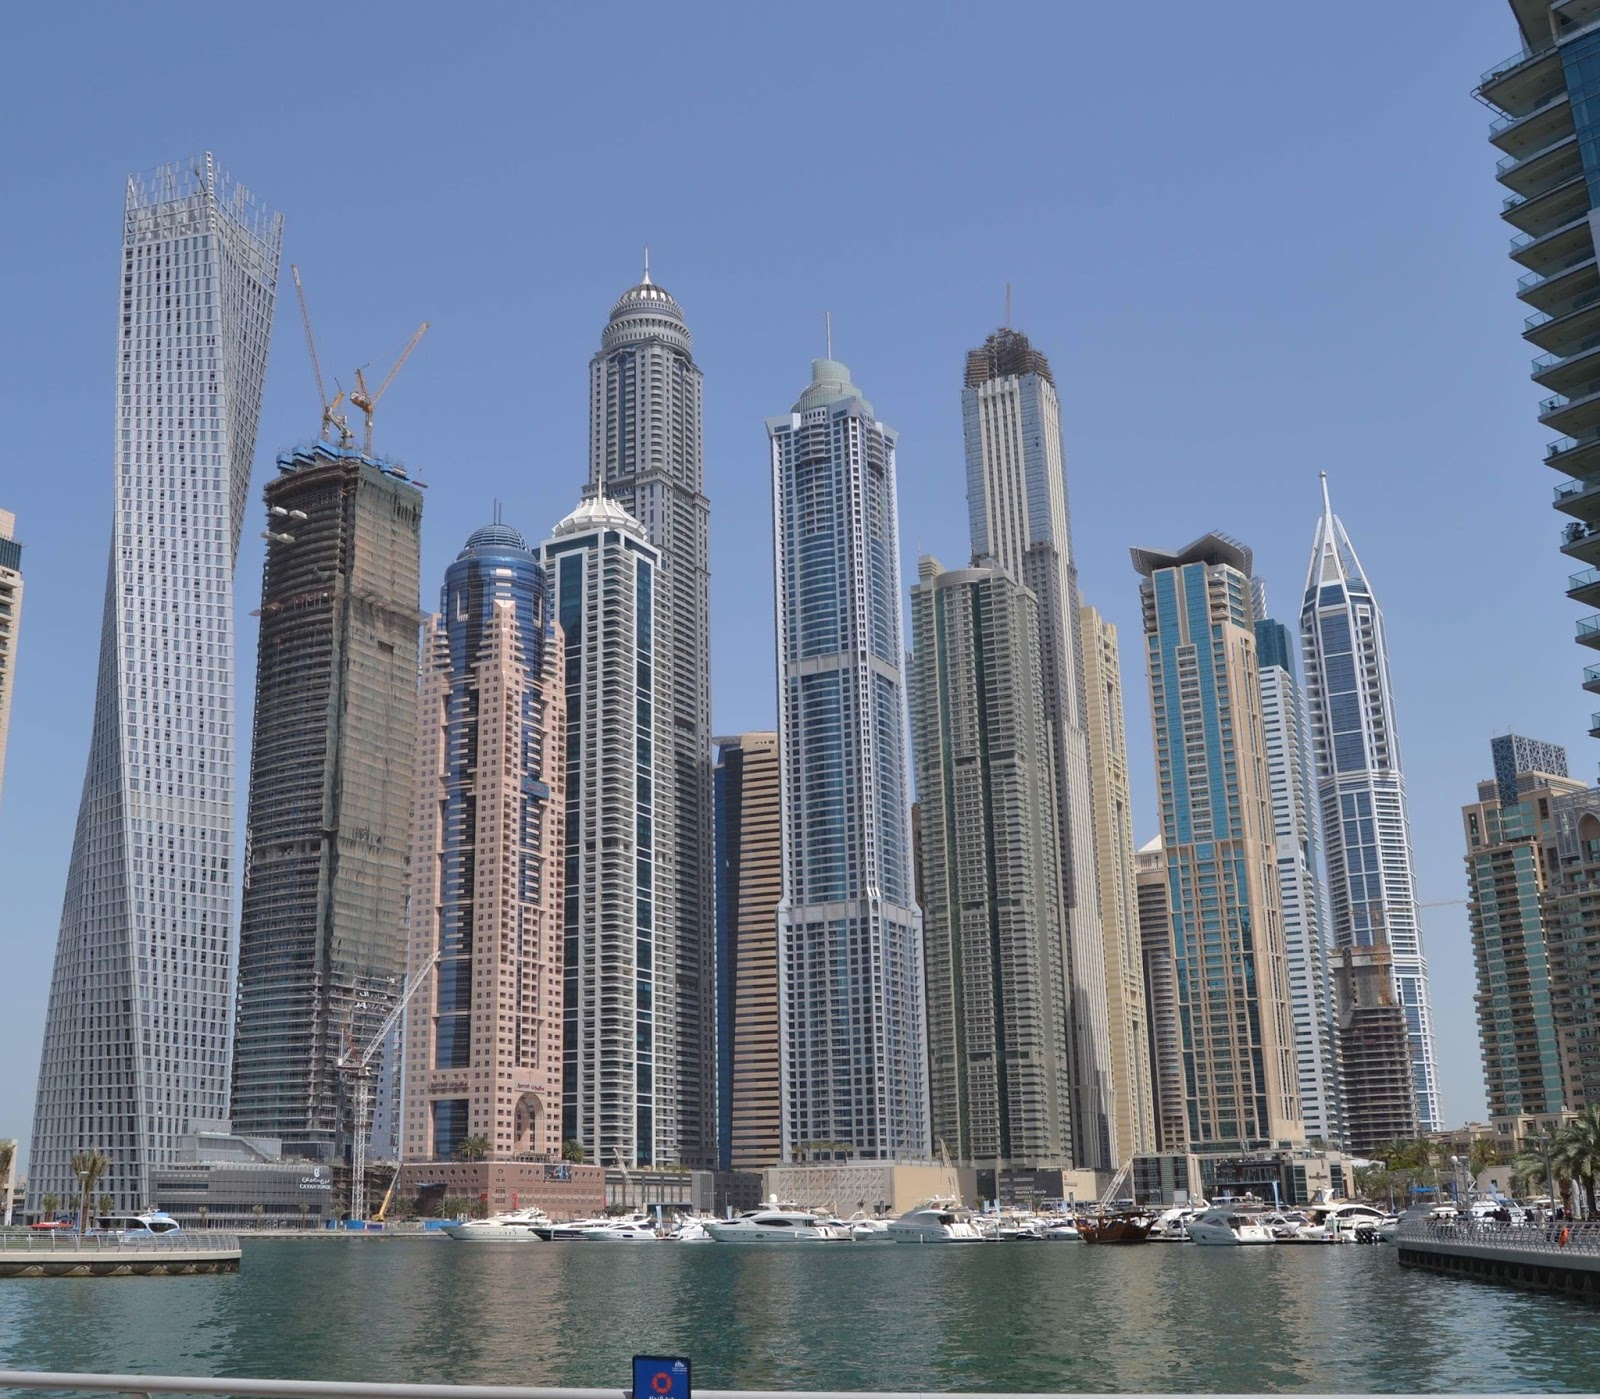 Expat life with chickenruby my sunday photo week 161 dubai marina they will mainly be in dubai however i do have a lot of travel planned to the uk this year and i love visiting historical sites castles and wandering reheart